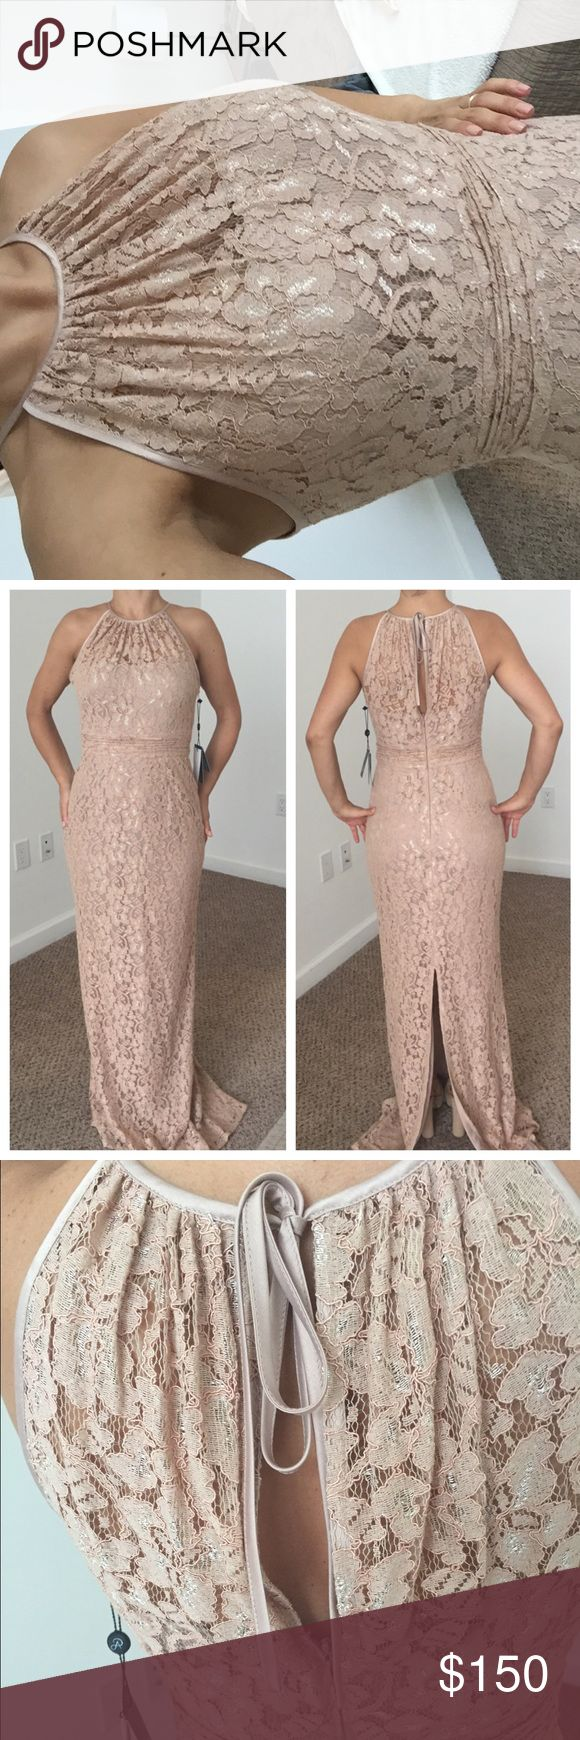 Adrianna Papell nude long dress Gorgeous floor length lace warm nude/blush color. The lace is very high end. Tags on still. Never got to wear it. No alterations done Adrianna Papell Dresses Maxi